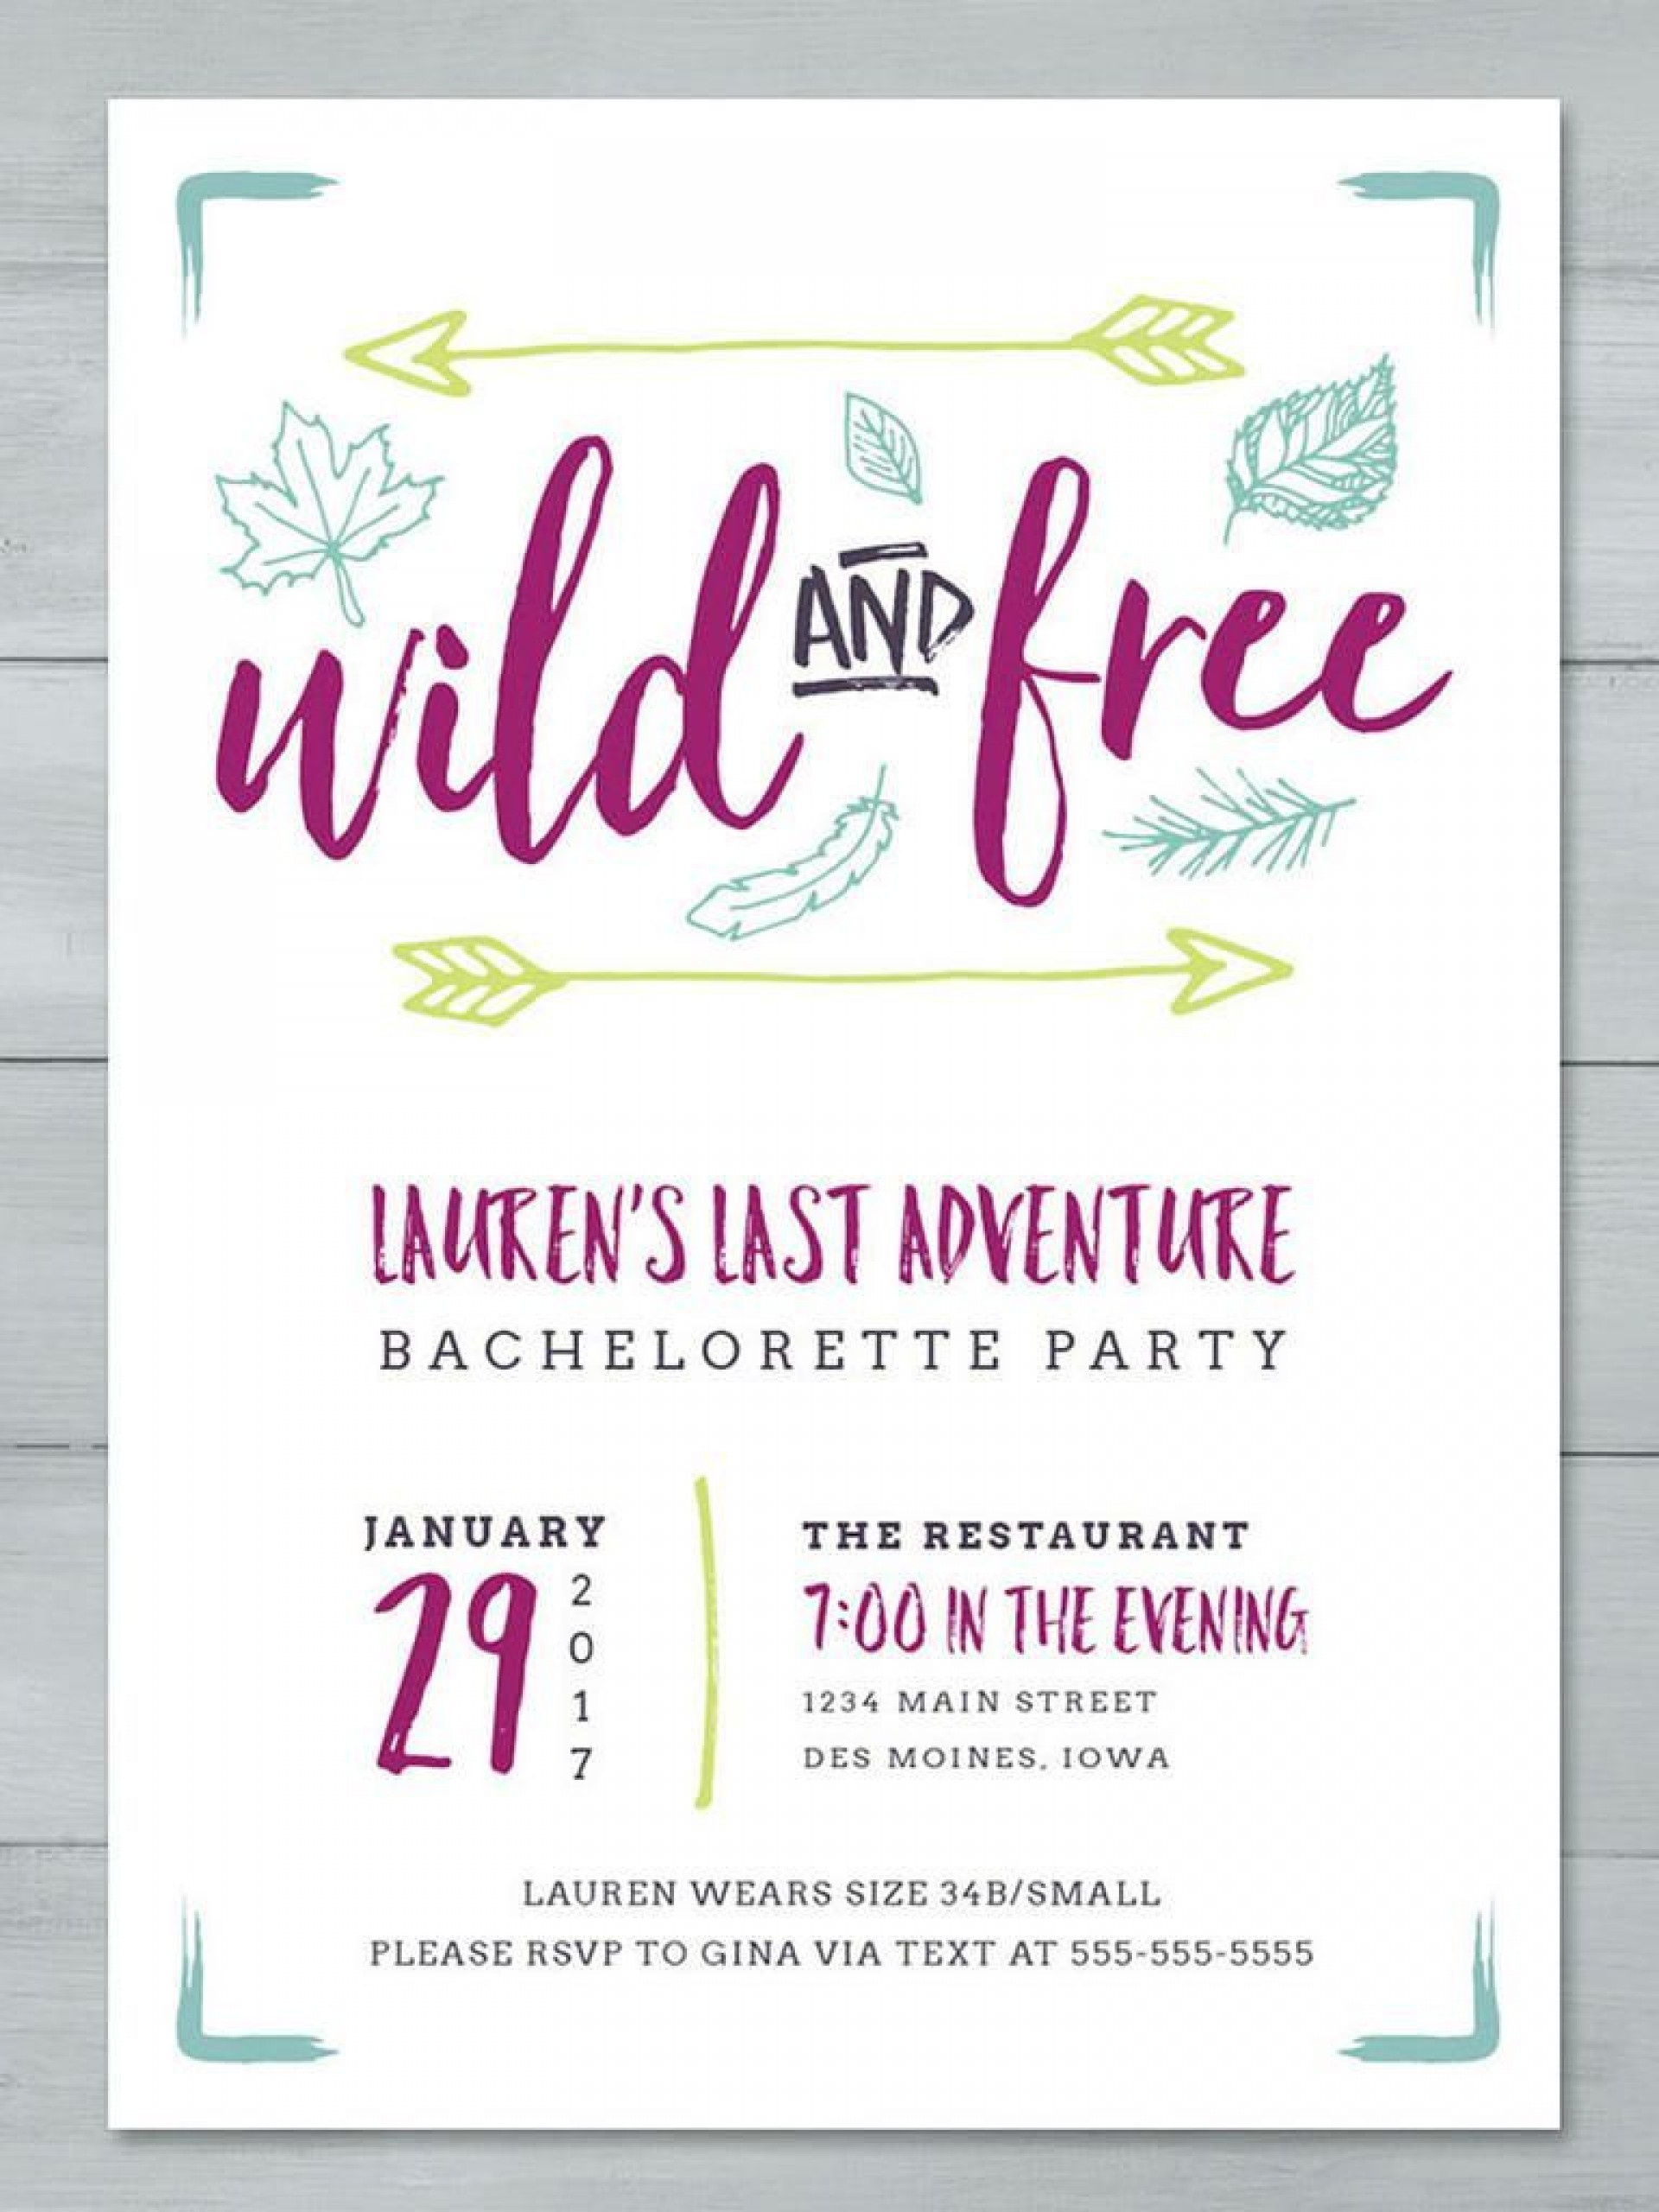 003 Stunning Bachelorette Itinerary Template Free High Resolution  Party Editable Download1920